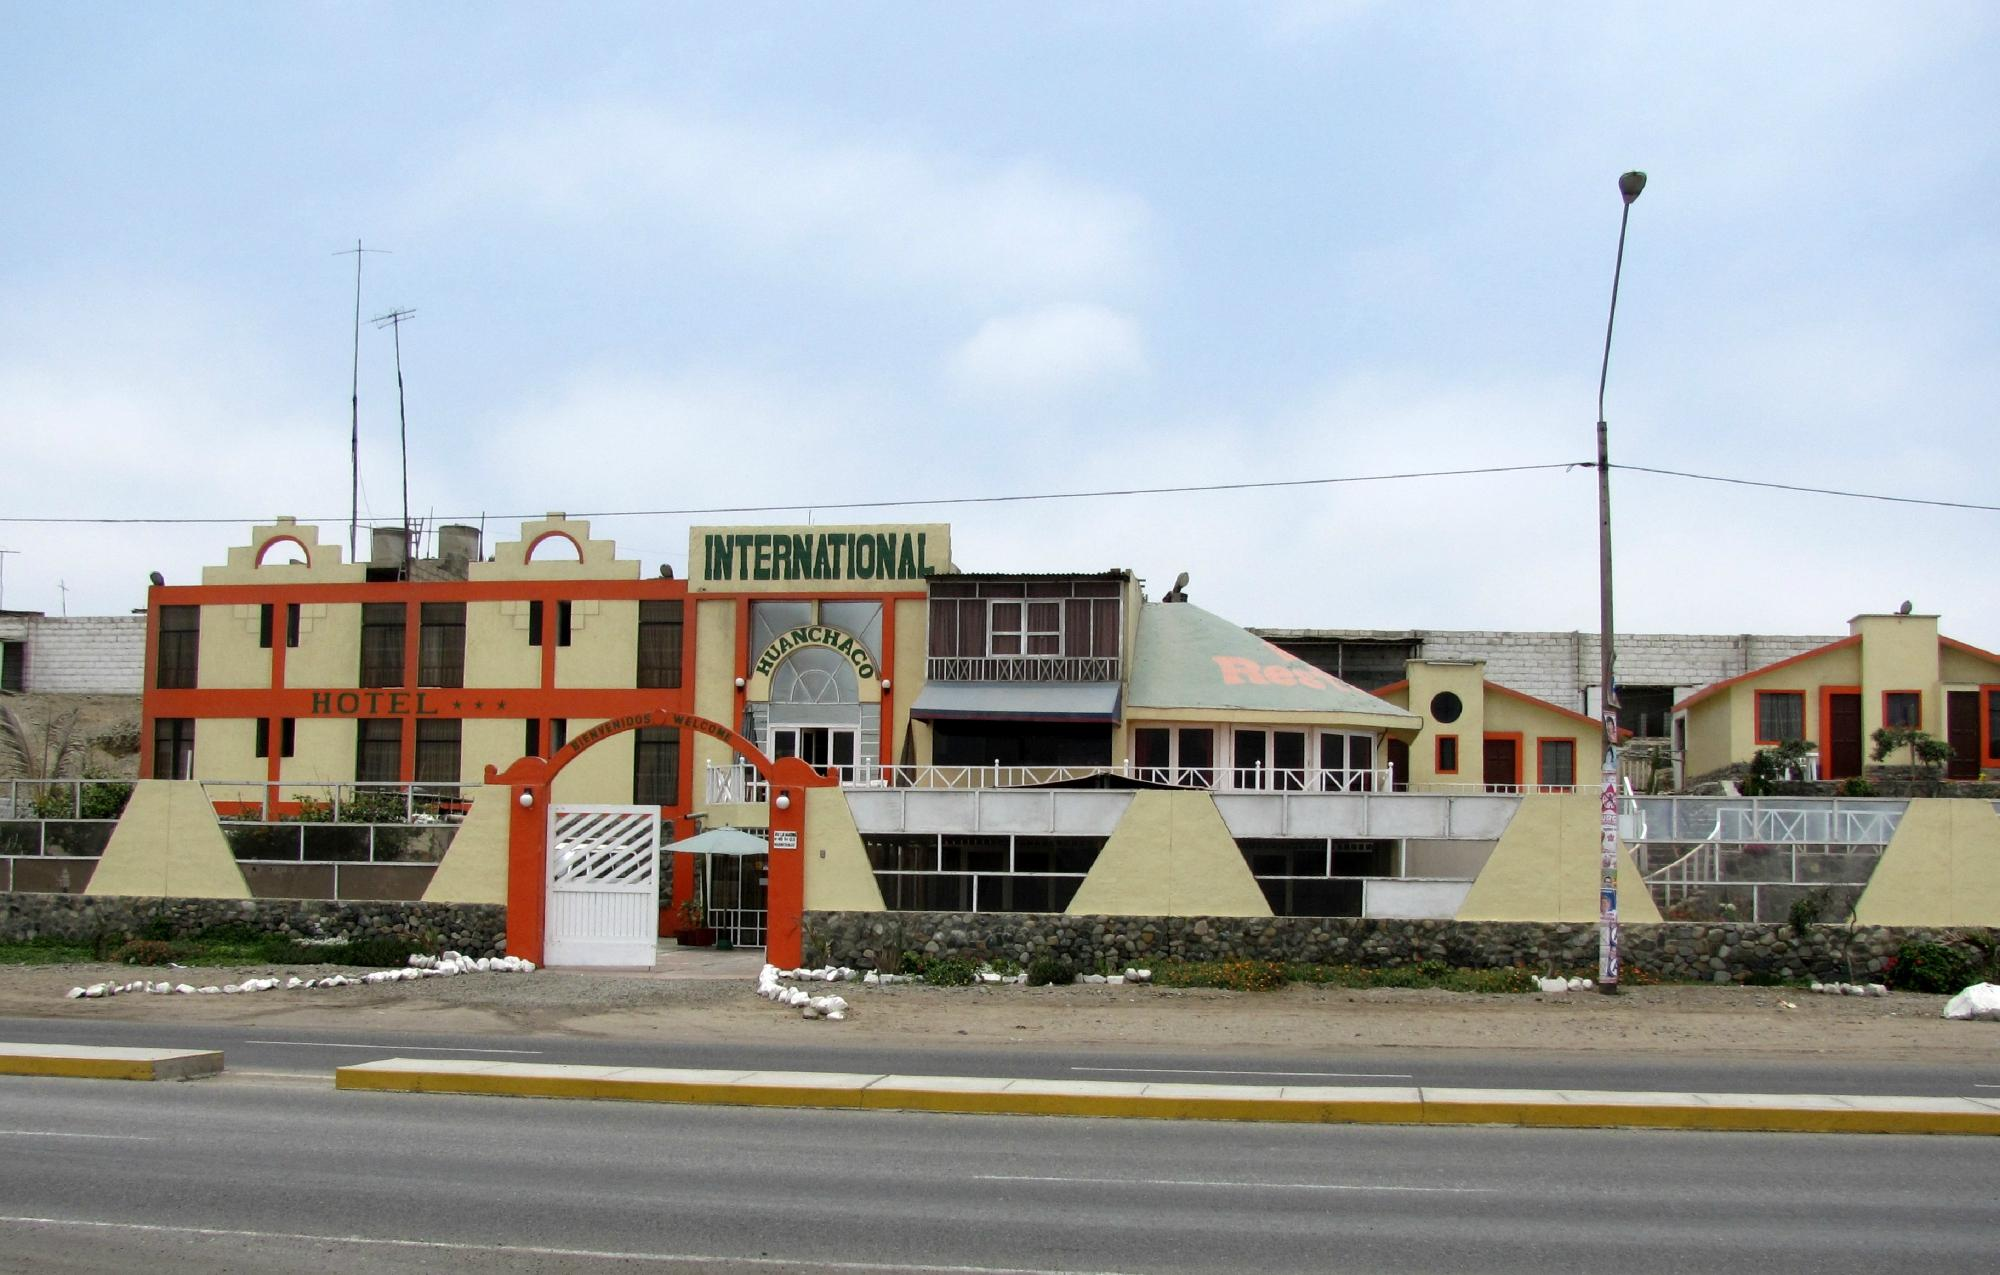 Huanchaco International Hotel